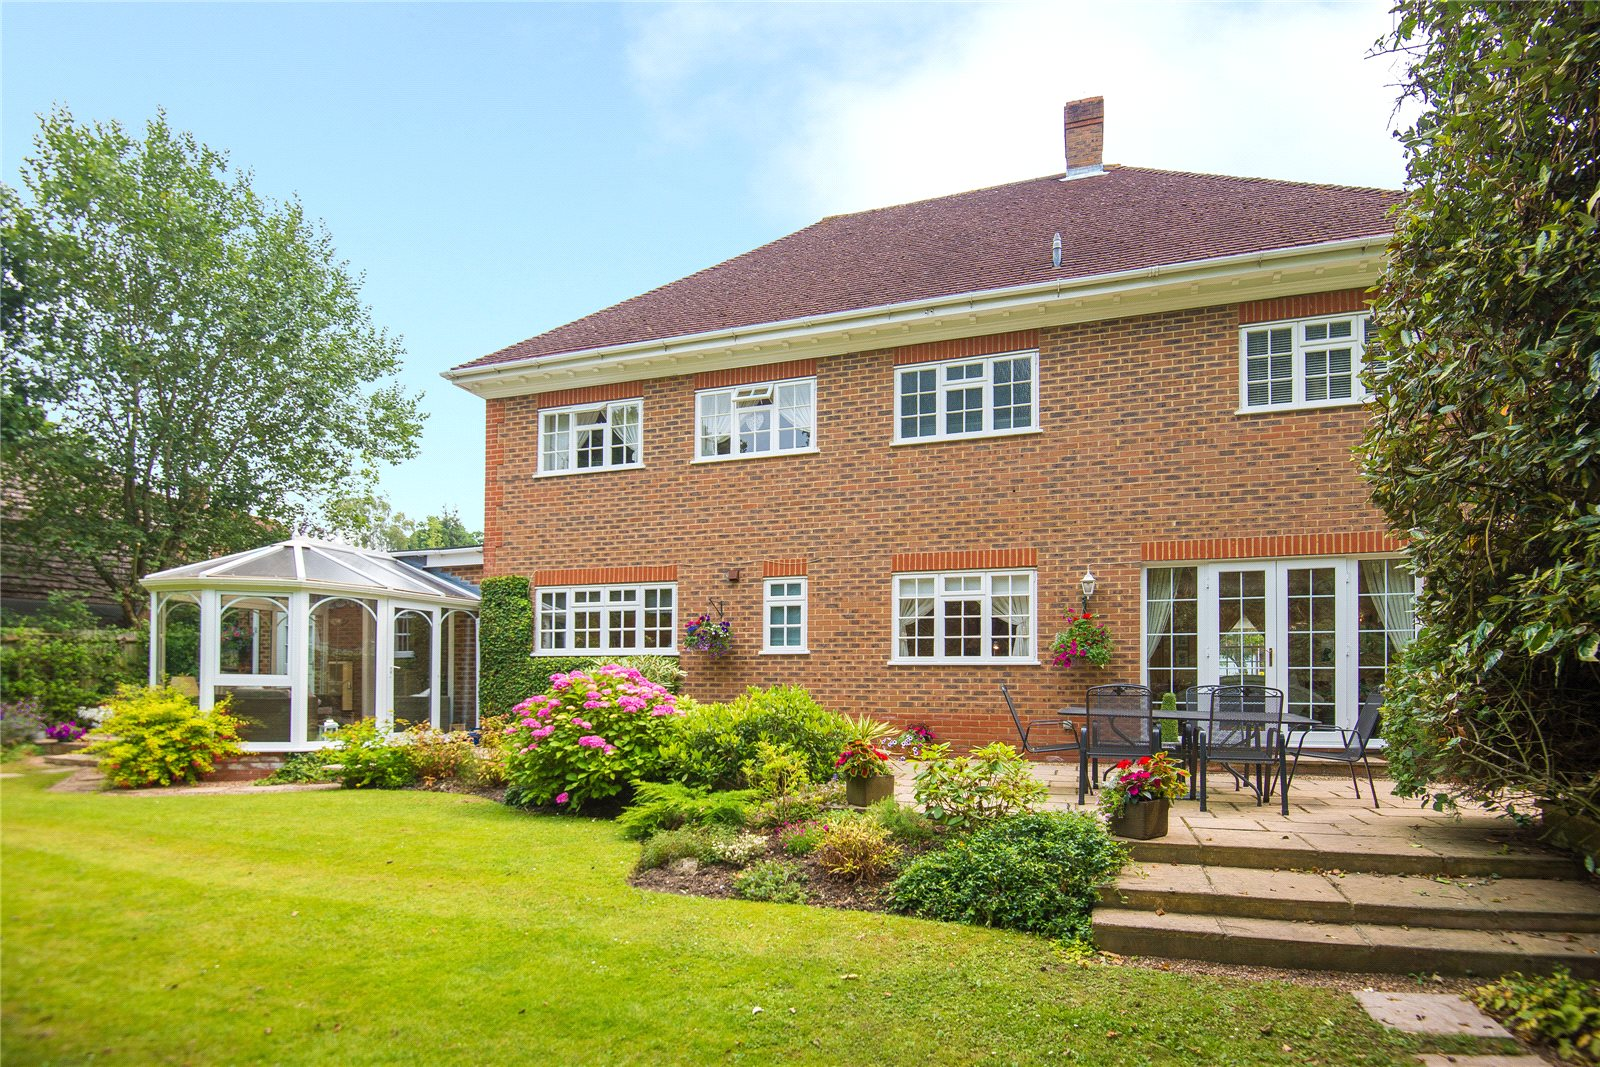 Additional photo for property listing at St Huberts Close, Gerrards Cross, Buckinghamshire, SL9 Gerrards Cross, 英格兰